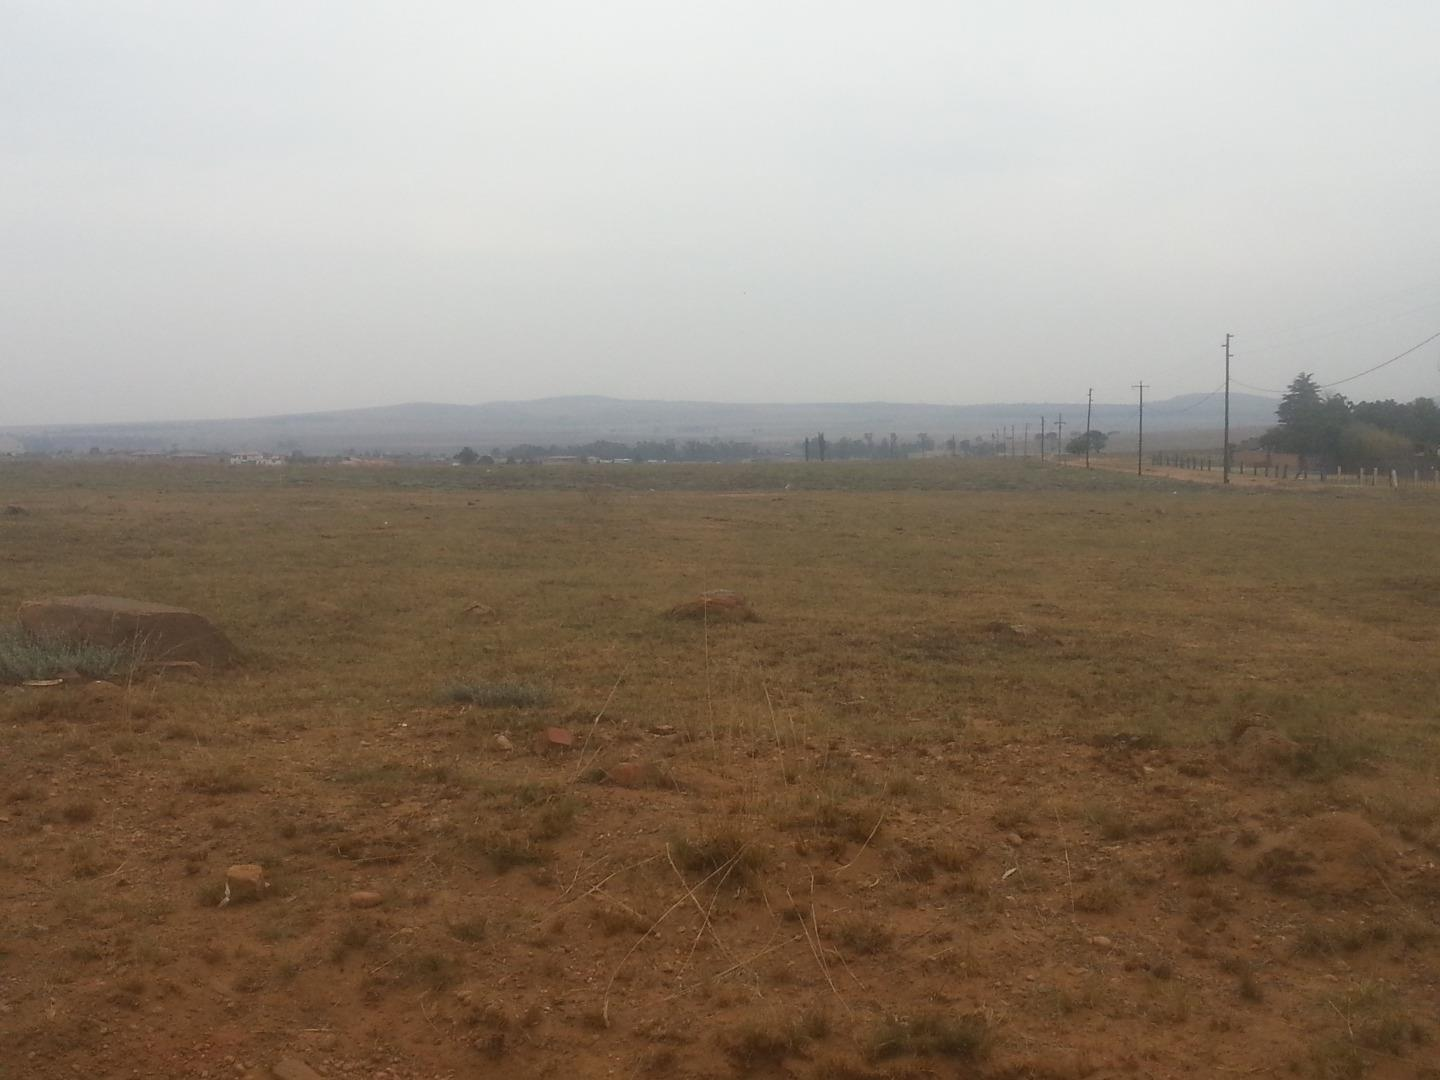 Vacant Land for Sale in Kaydale, Nigel - Gauteng